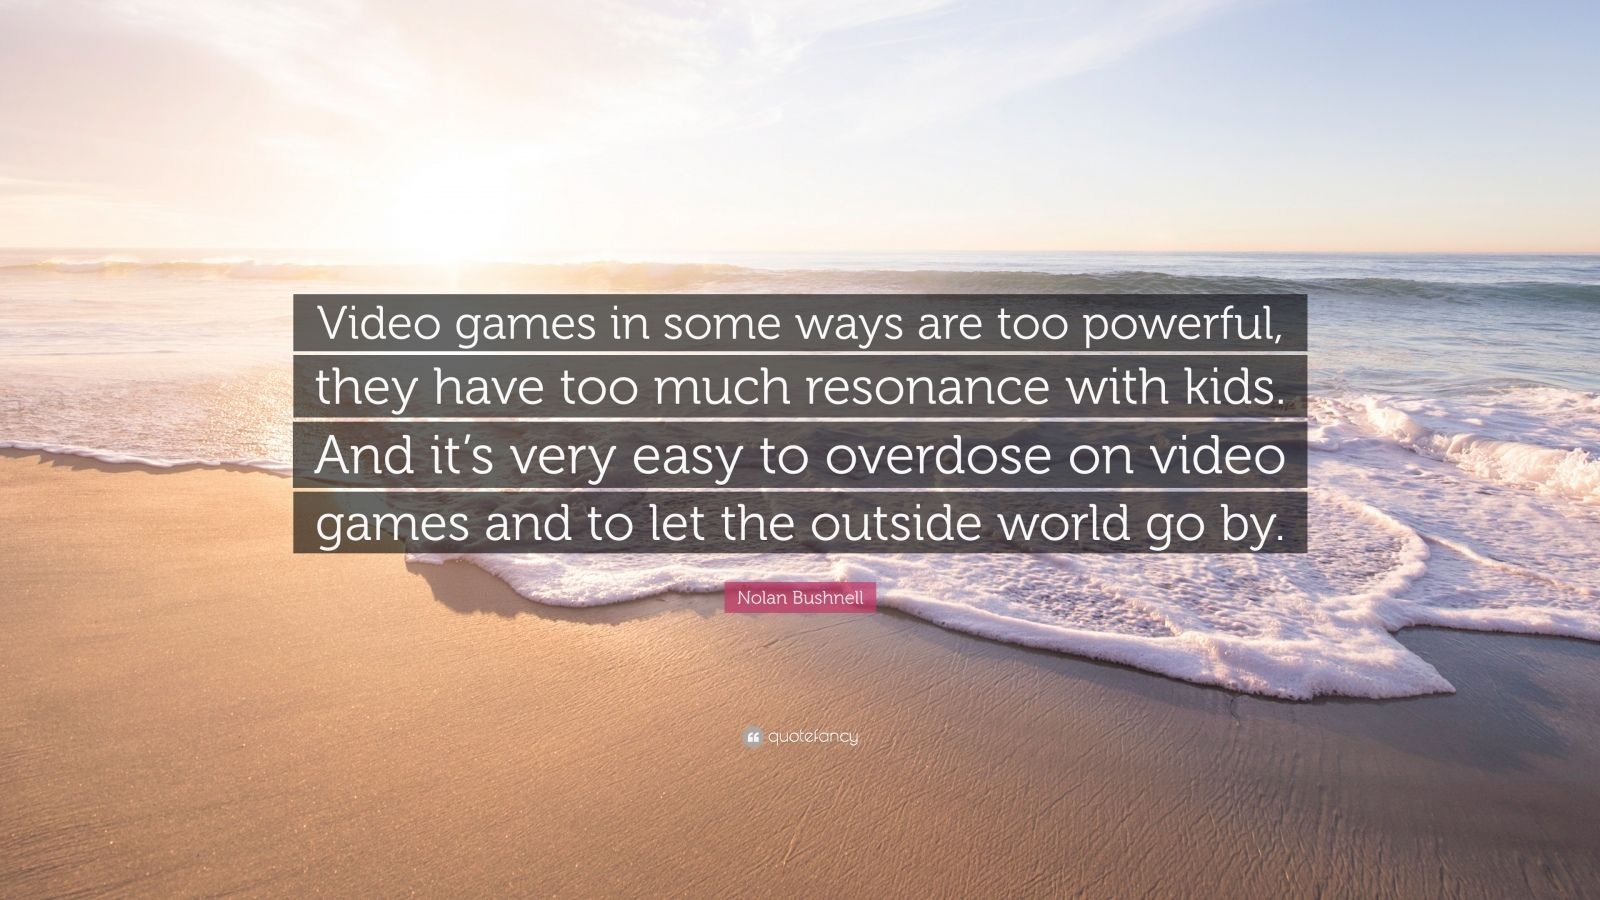 """Nolan Bushnell Quote: """"Video games in some ways are too powerful, they have too much resonance with kids. And it's very easy to overdose on video games and to let the outside world go by."""""""